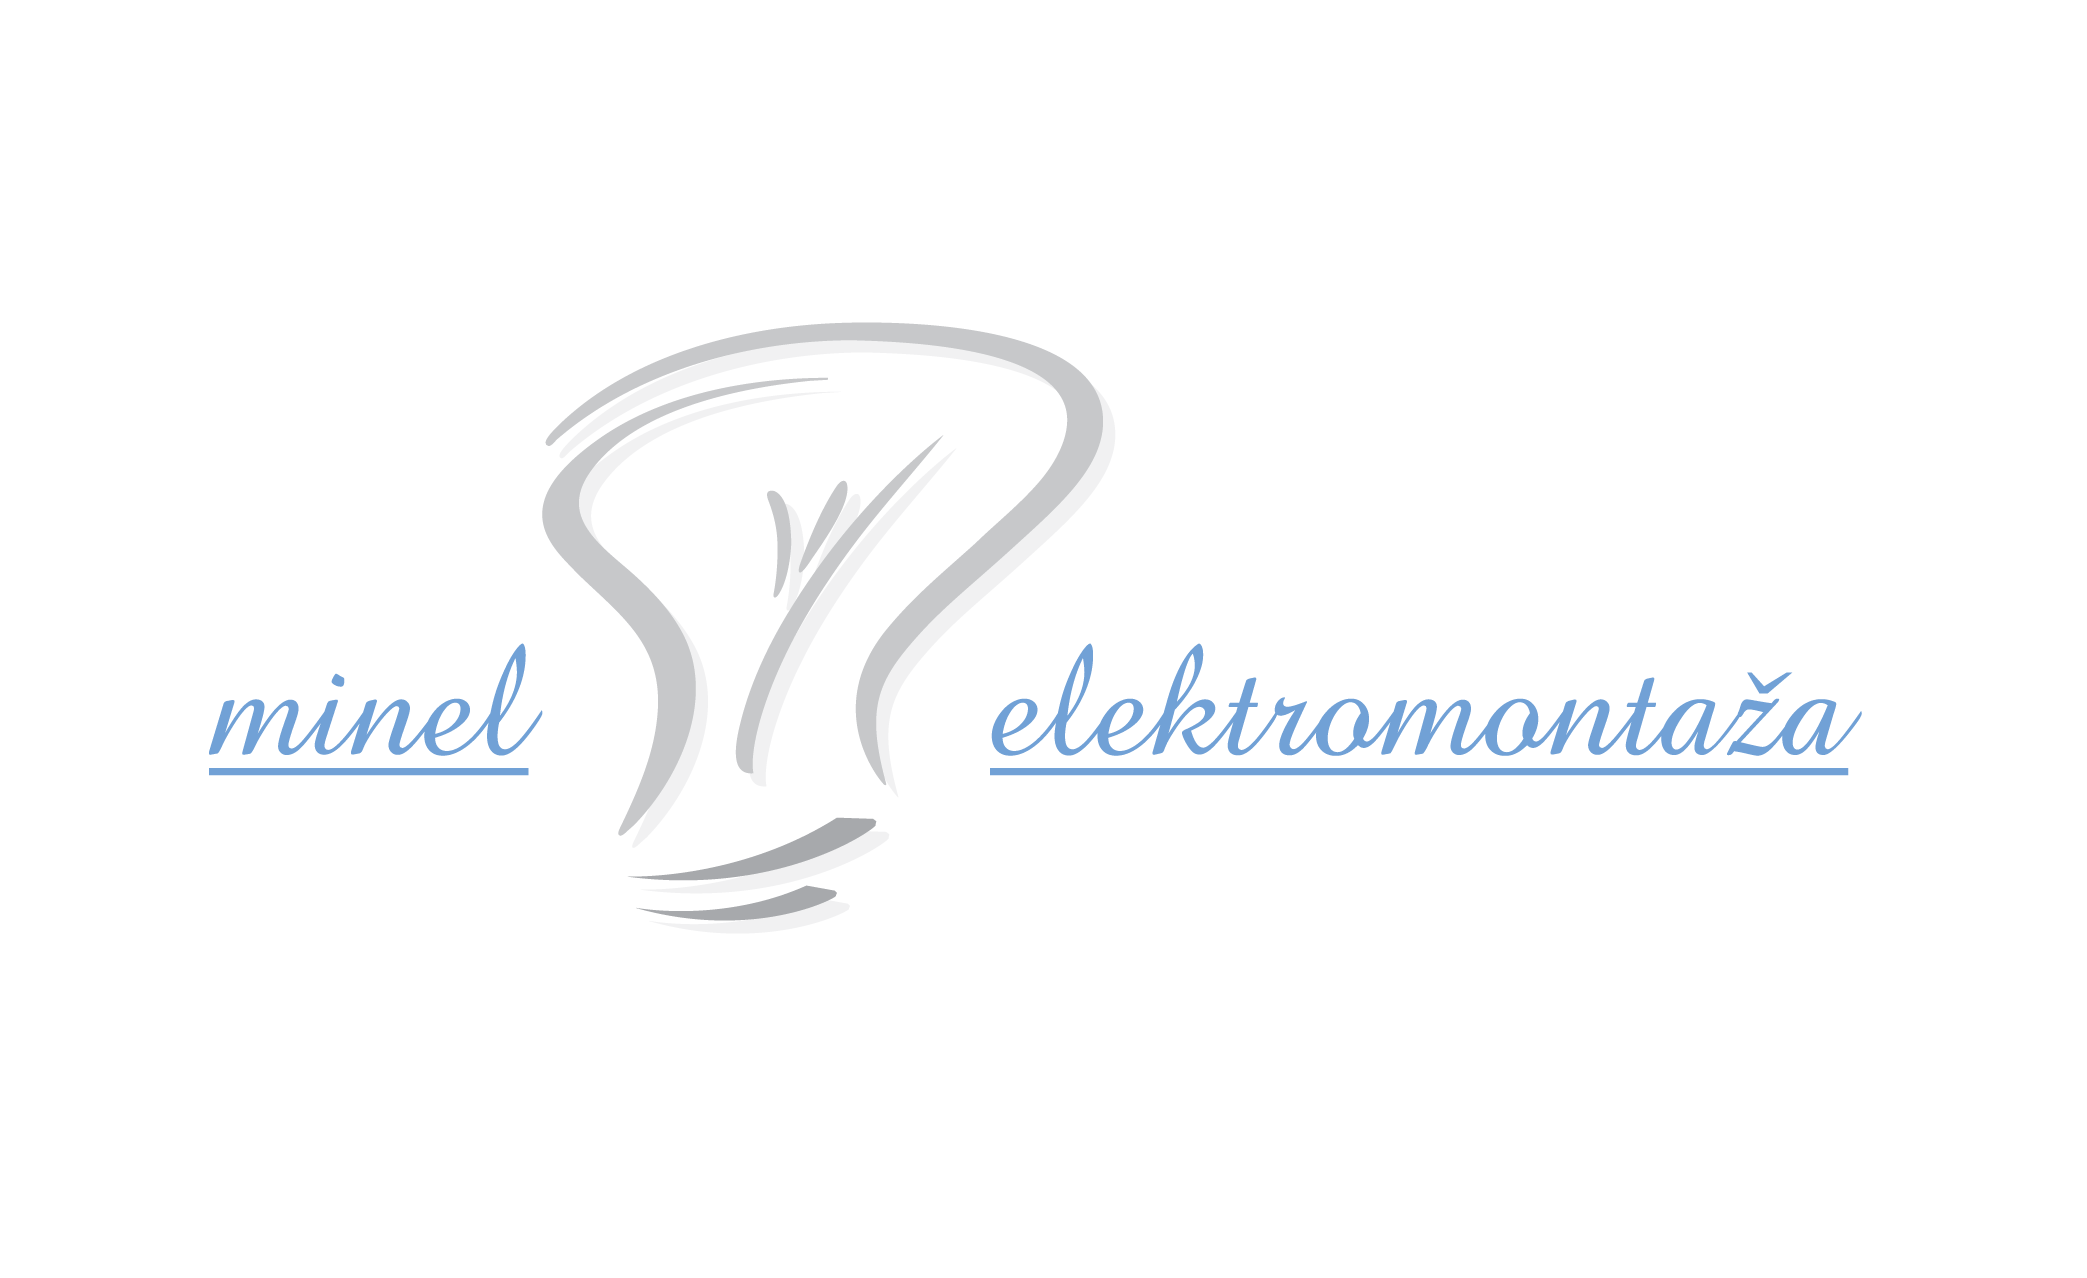 Client Minel Elektromontaza A Company For Installing And Maintaining Electrical Installations Equipment Belgrade Serbia